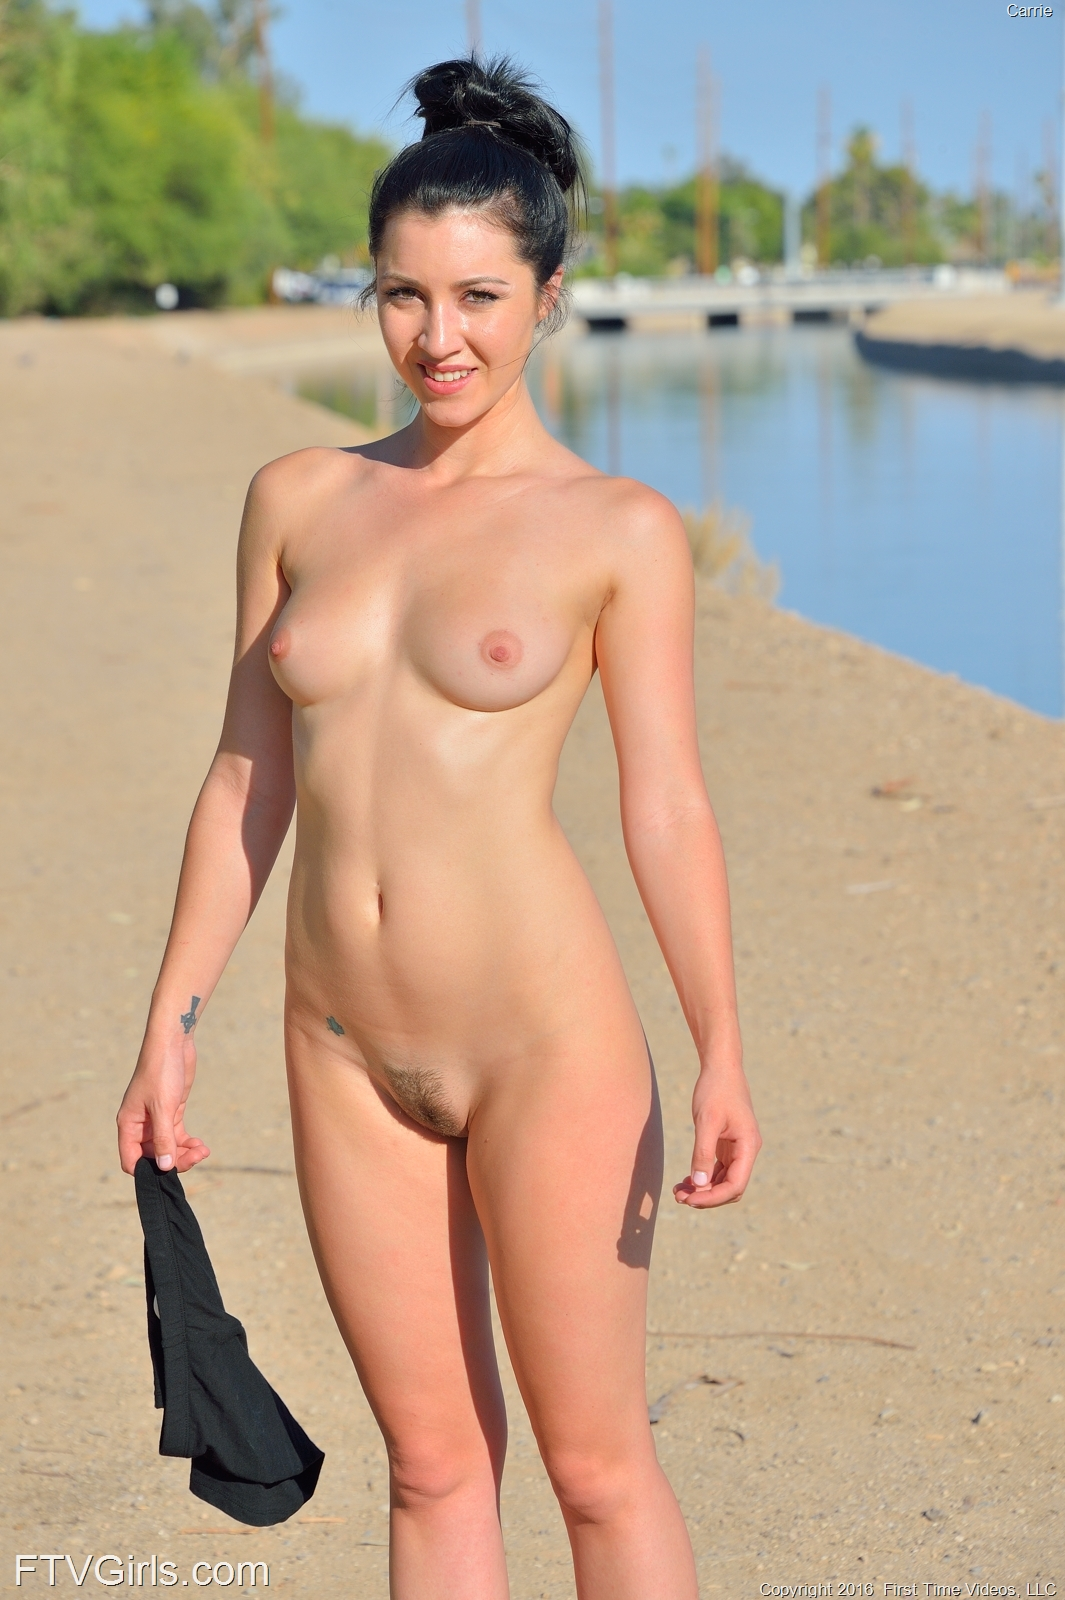 jogging naked girls